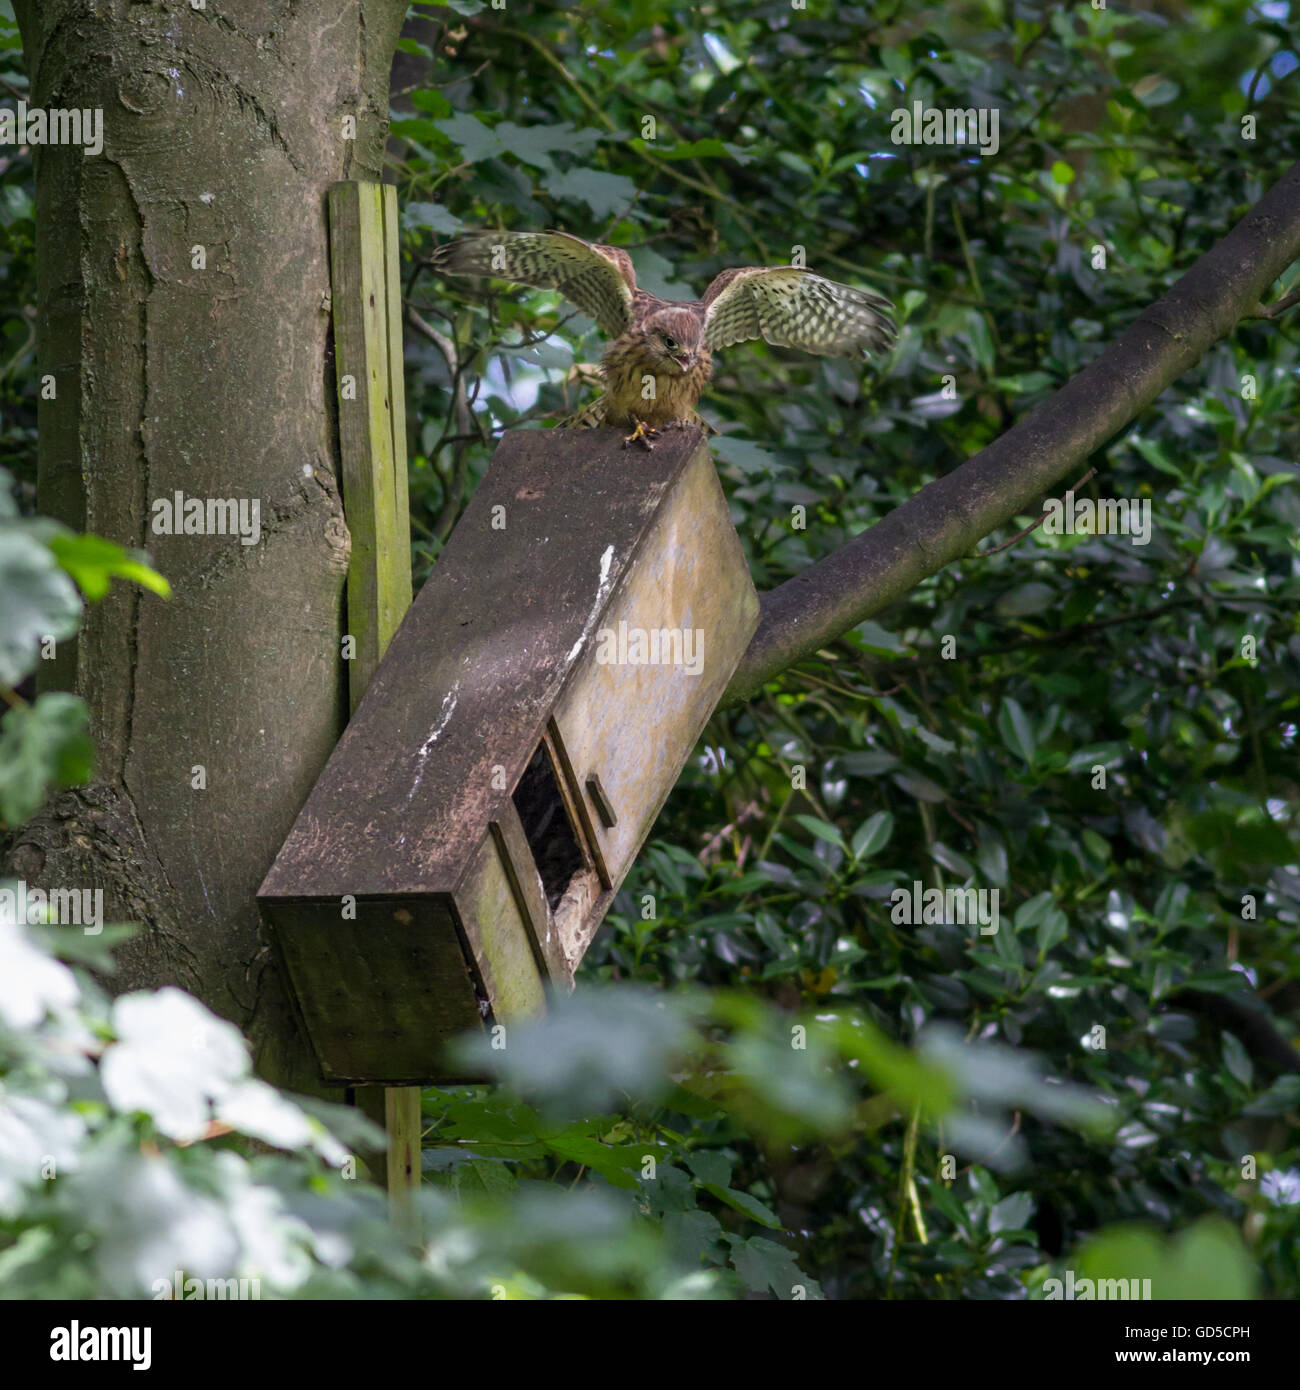 Fledgling kestrel (Falco tinnunculus) exercising its wings on top of its nesting box, learning to fly - Stock Image